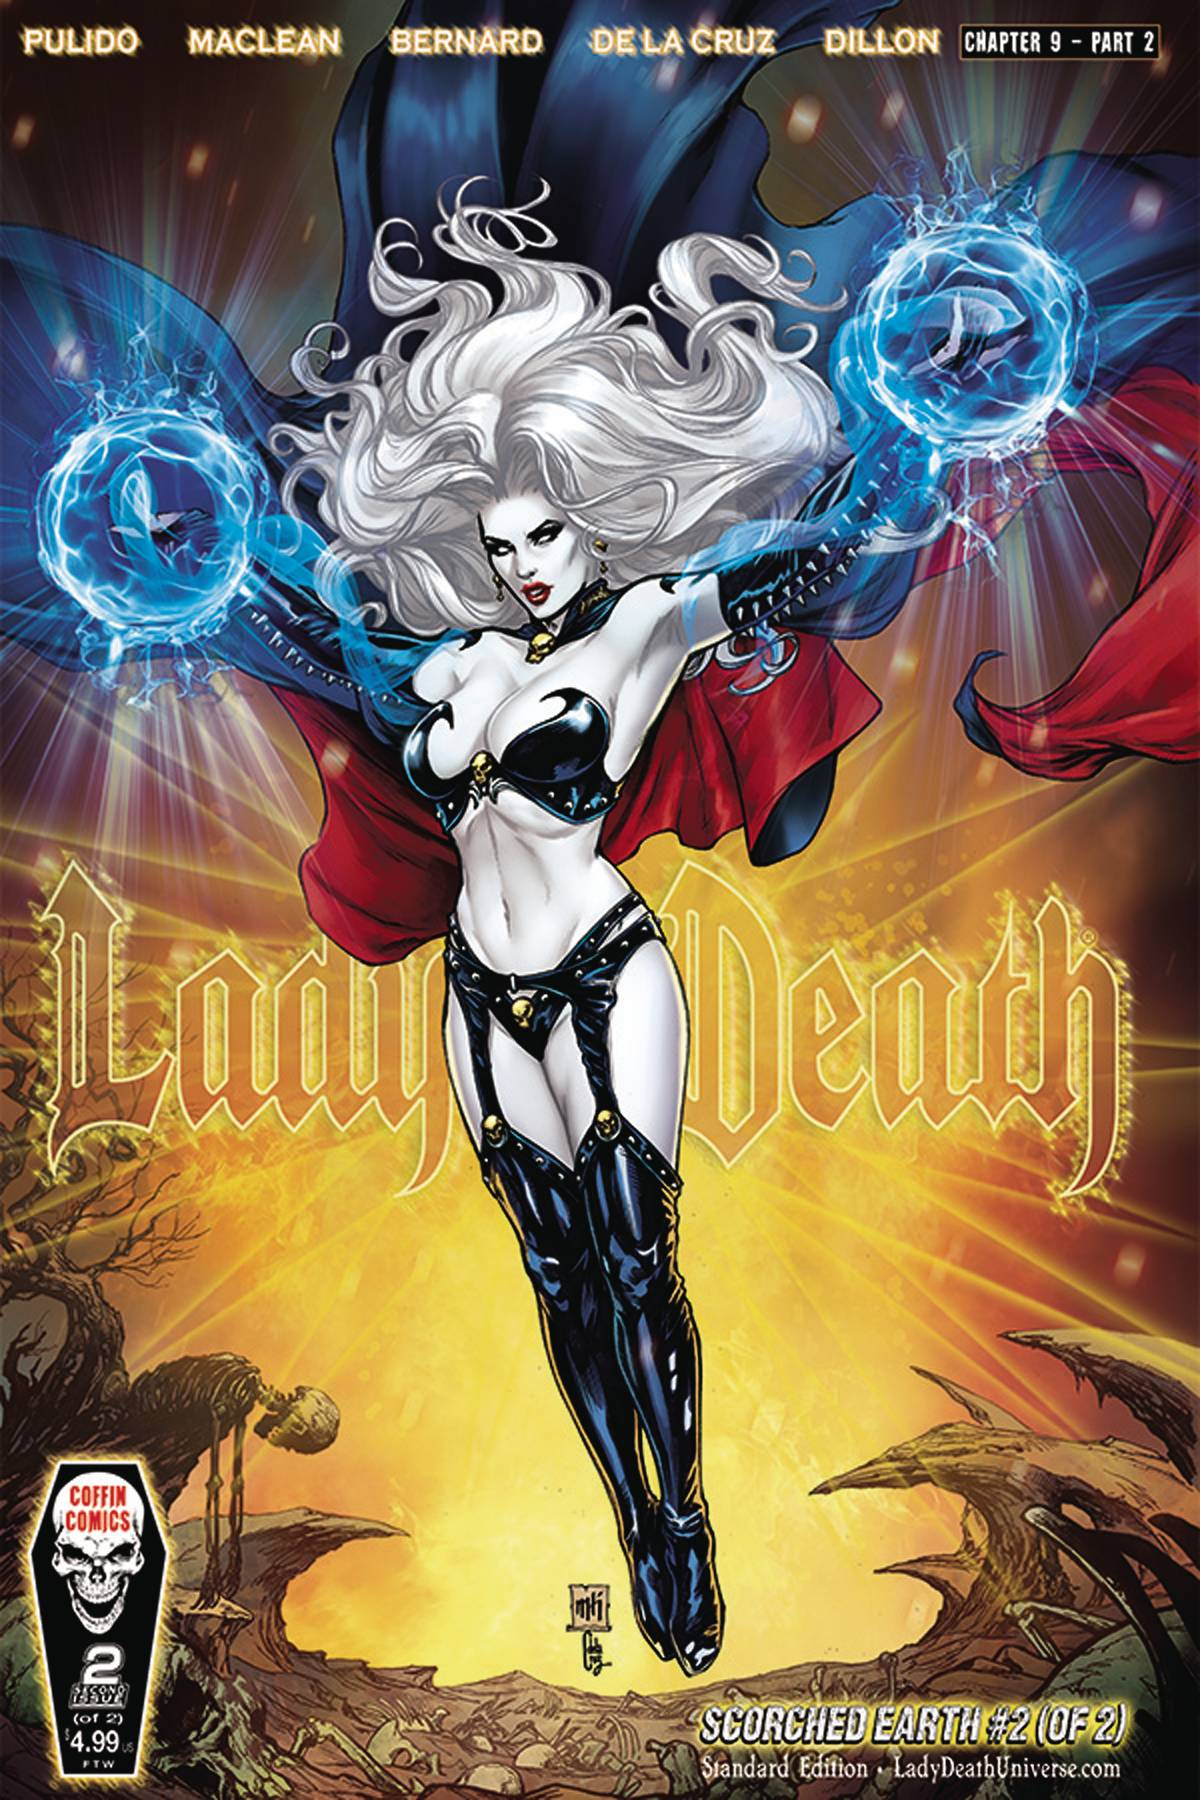 LADY DEATH SCORCHED EARTH